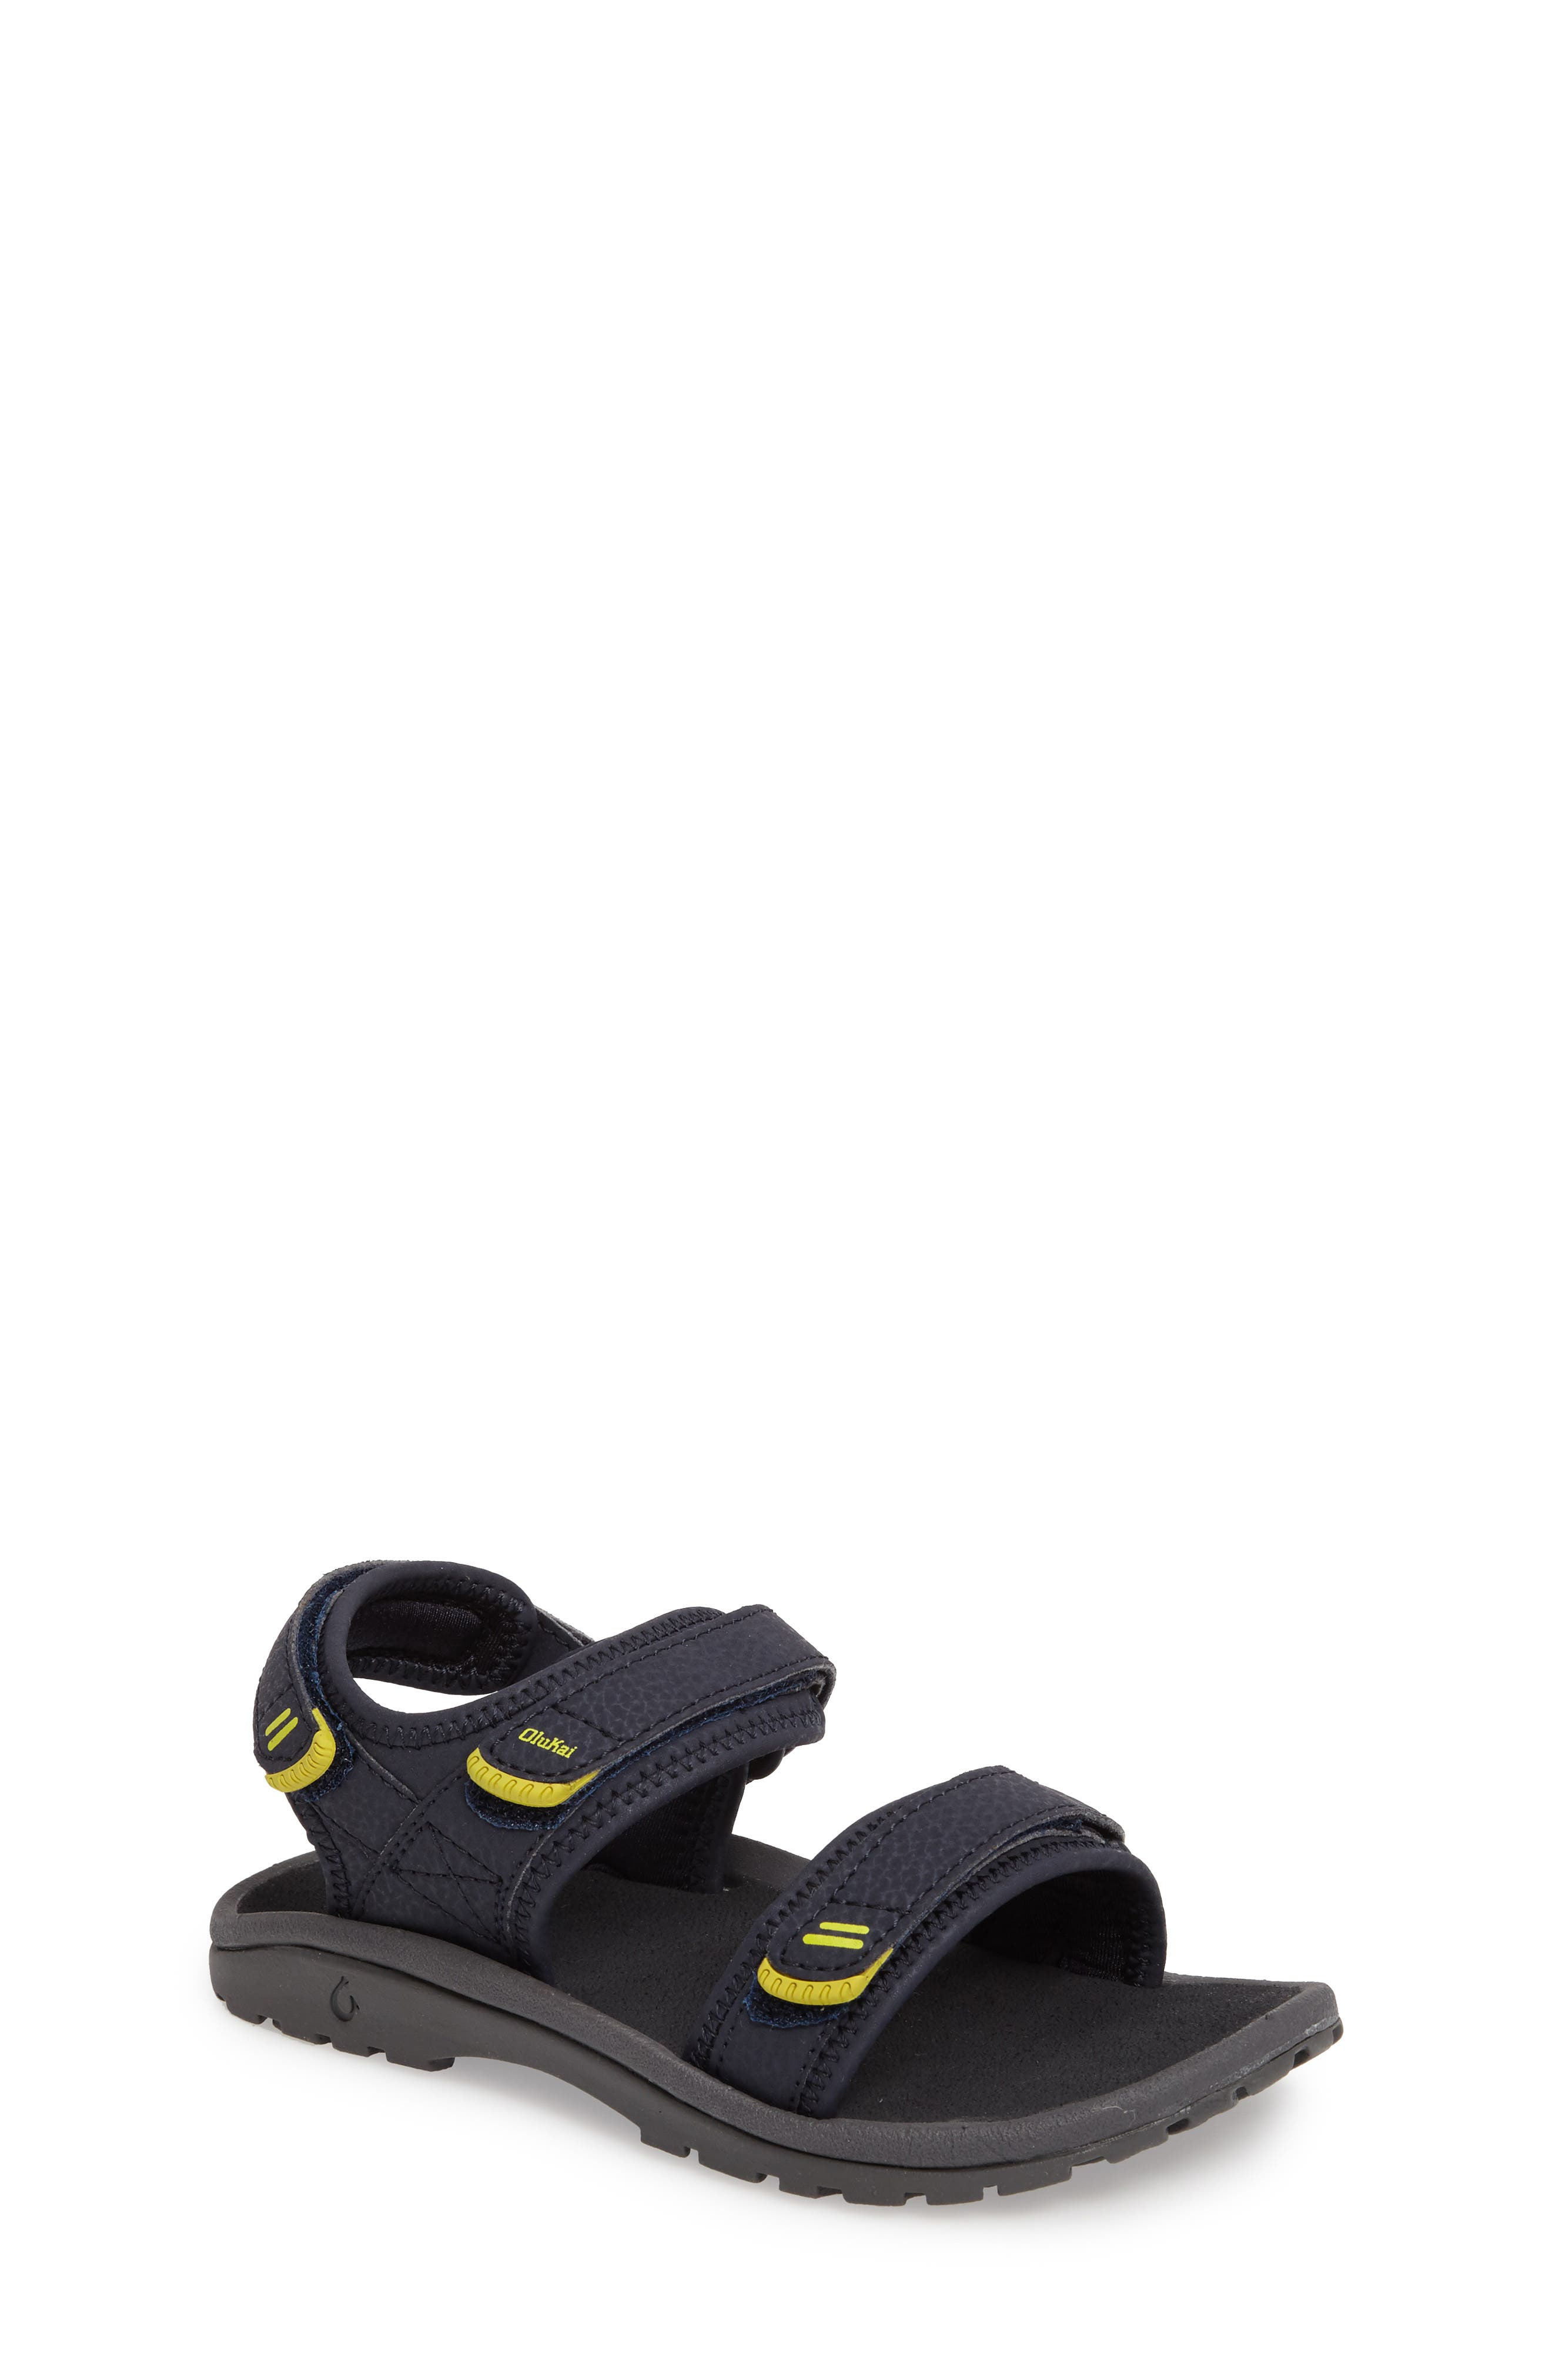 Main Image - OluKai Pahu Sandal (Toddler, Little Kid & Big Kid)